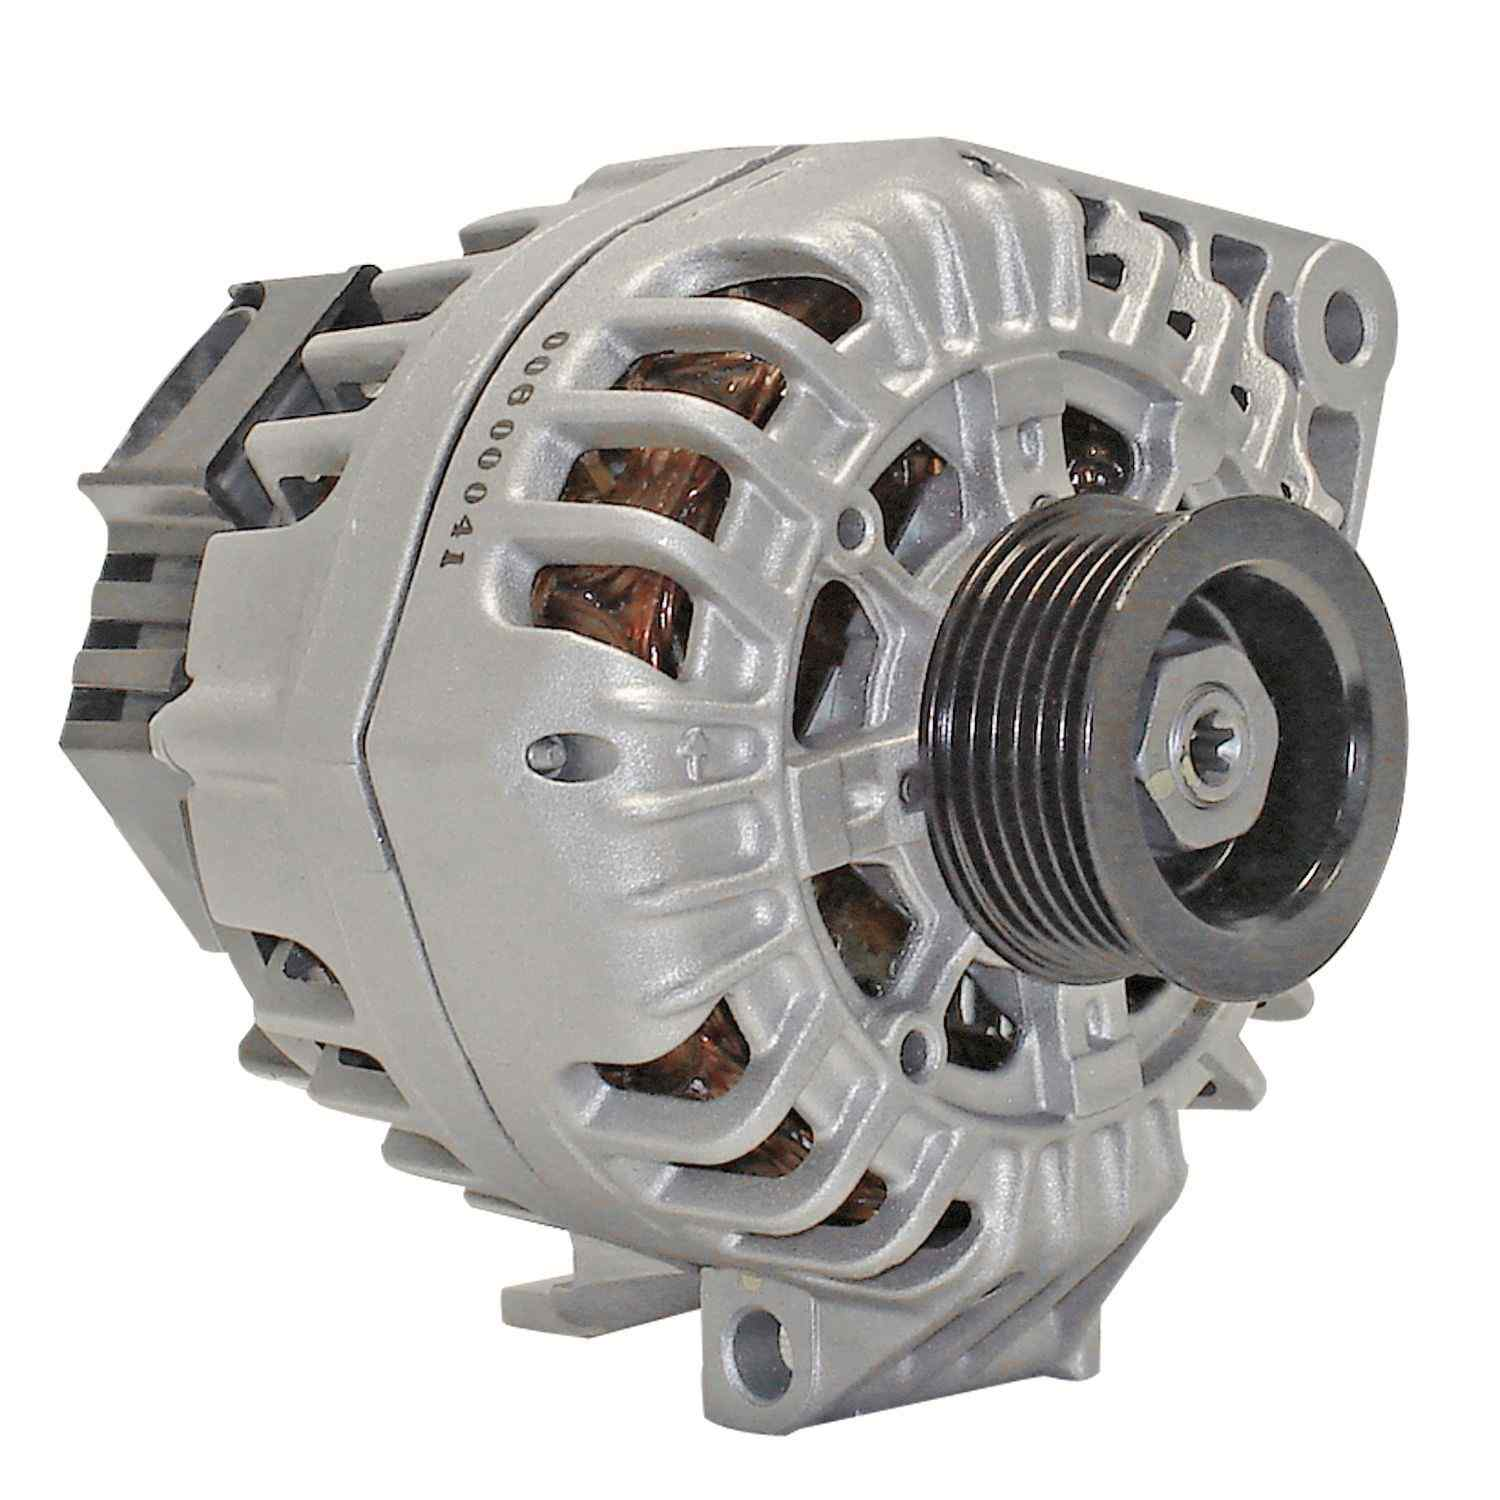 ACDELCO GOLD/PROFESSIONAL - Reman Alternator - DCC 334-1467A